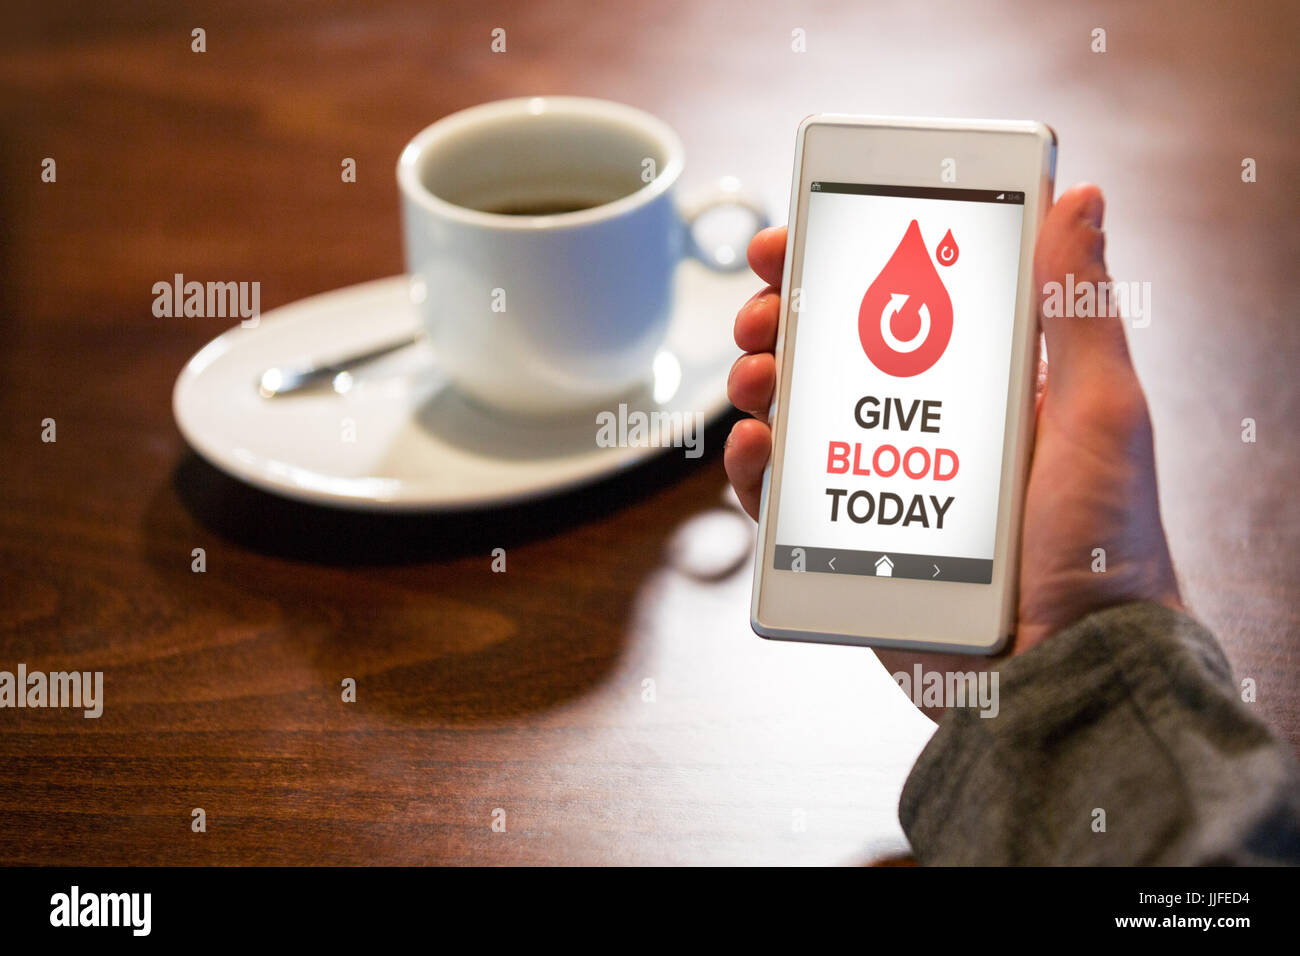 Give Blood Today text with icons on screen against hand holding mobile phone - Stock Image